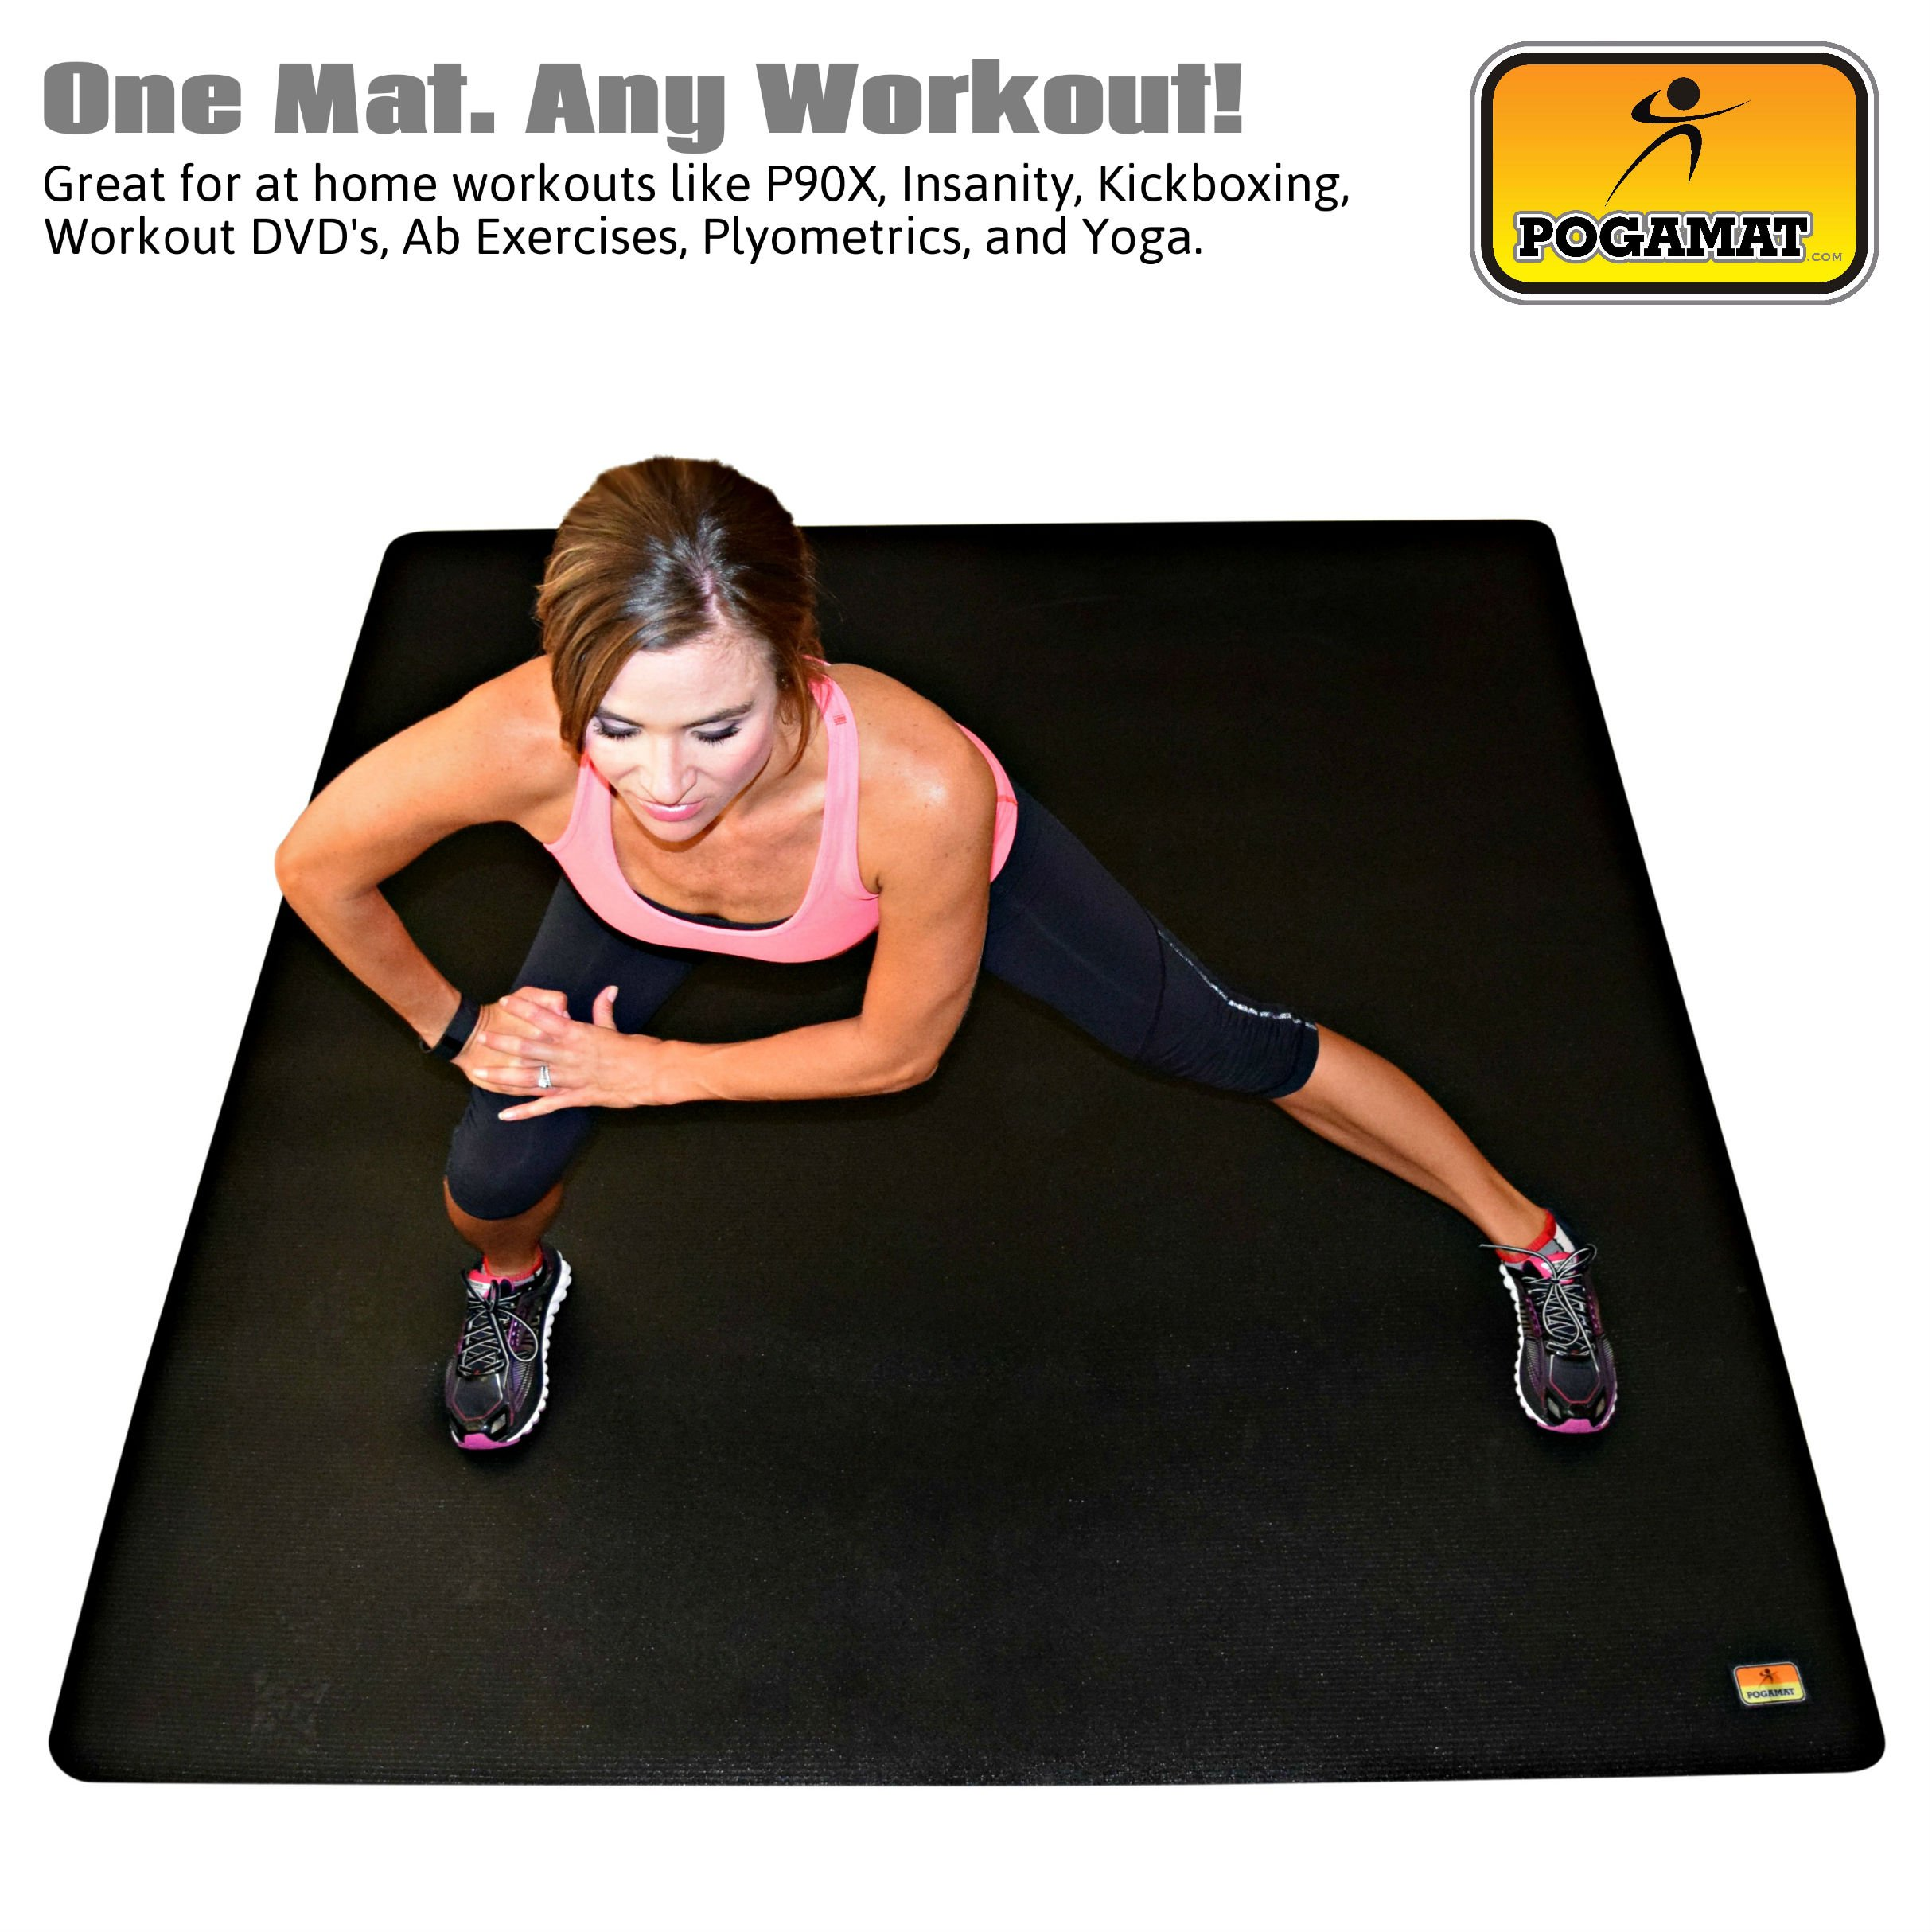 Pogamat Large Exercise Mat 78'' x 48'' x 1/4'' Thick (6.5' x 4') Anti-Tear Workout Mat And Yoga Mats. Perfect For All Types Of Exercises. Does Not ''Bunch Up'' While Working Out. Used WITH Or Without SHOES by Pogamat (Image #2)